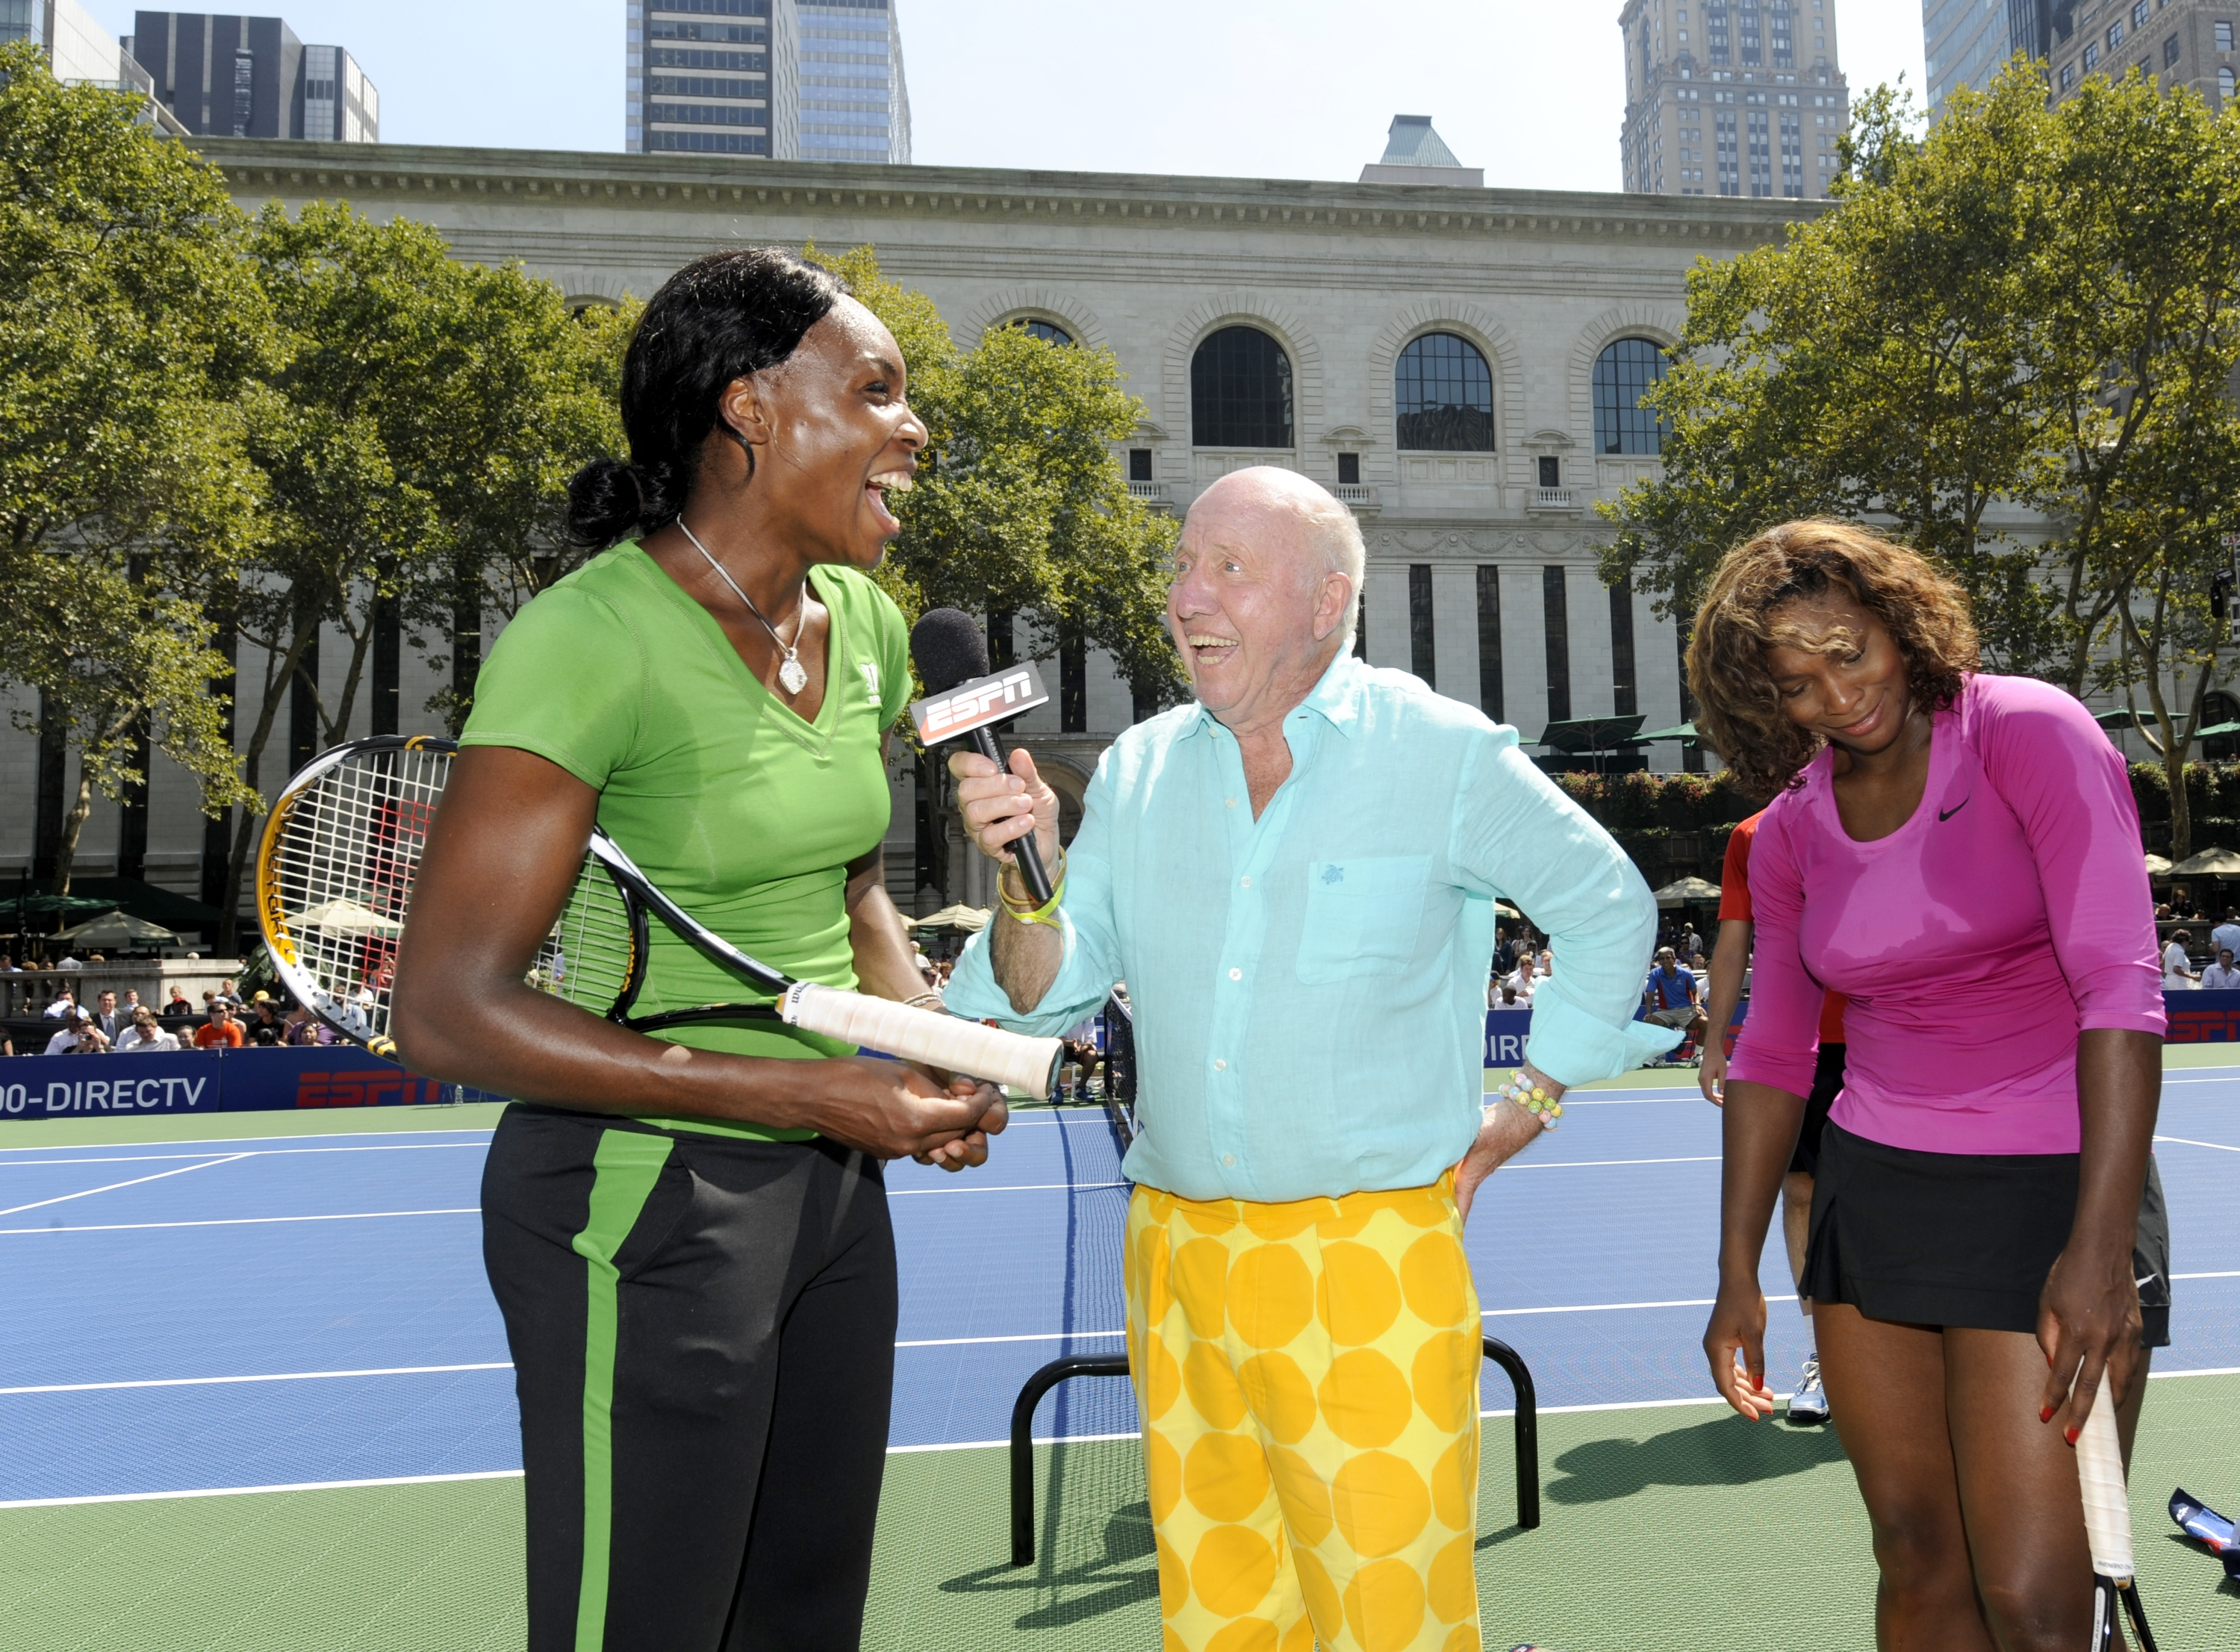 NEW YORK - AUGUST 26: Venus Williams and sister Serena Williams are interviewed by Bud Collins at the DIRECTV ESPN US Open Experience promoting DIRECTV's mosaic coverage of the US Open August 26, 2009 at Bryant Park in New York Cty. (Rob Tringali/Getty Im